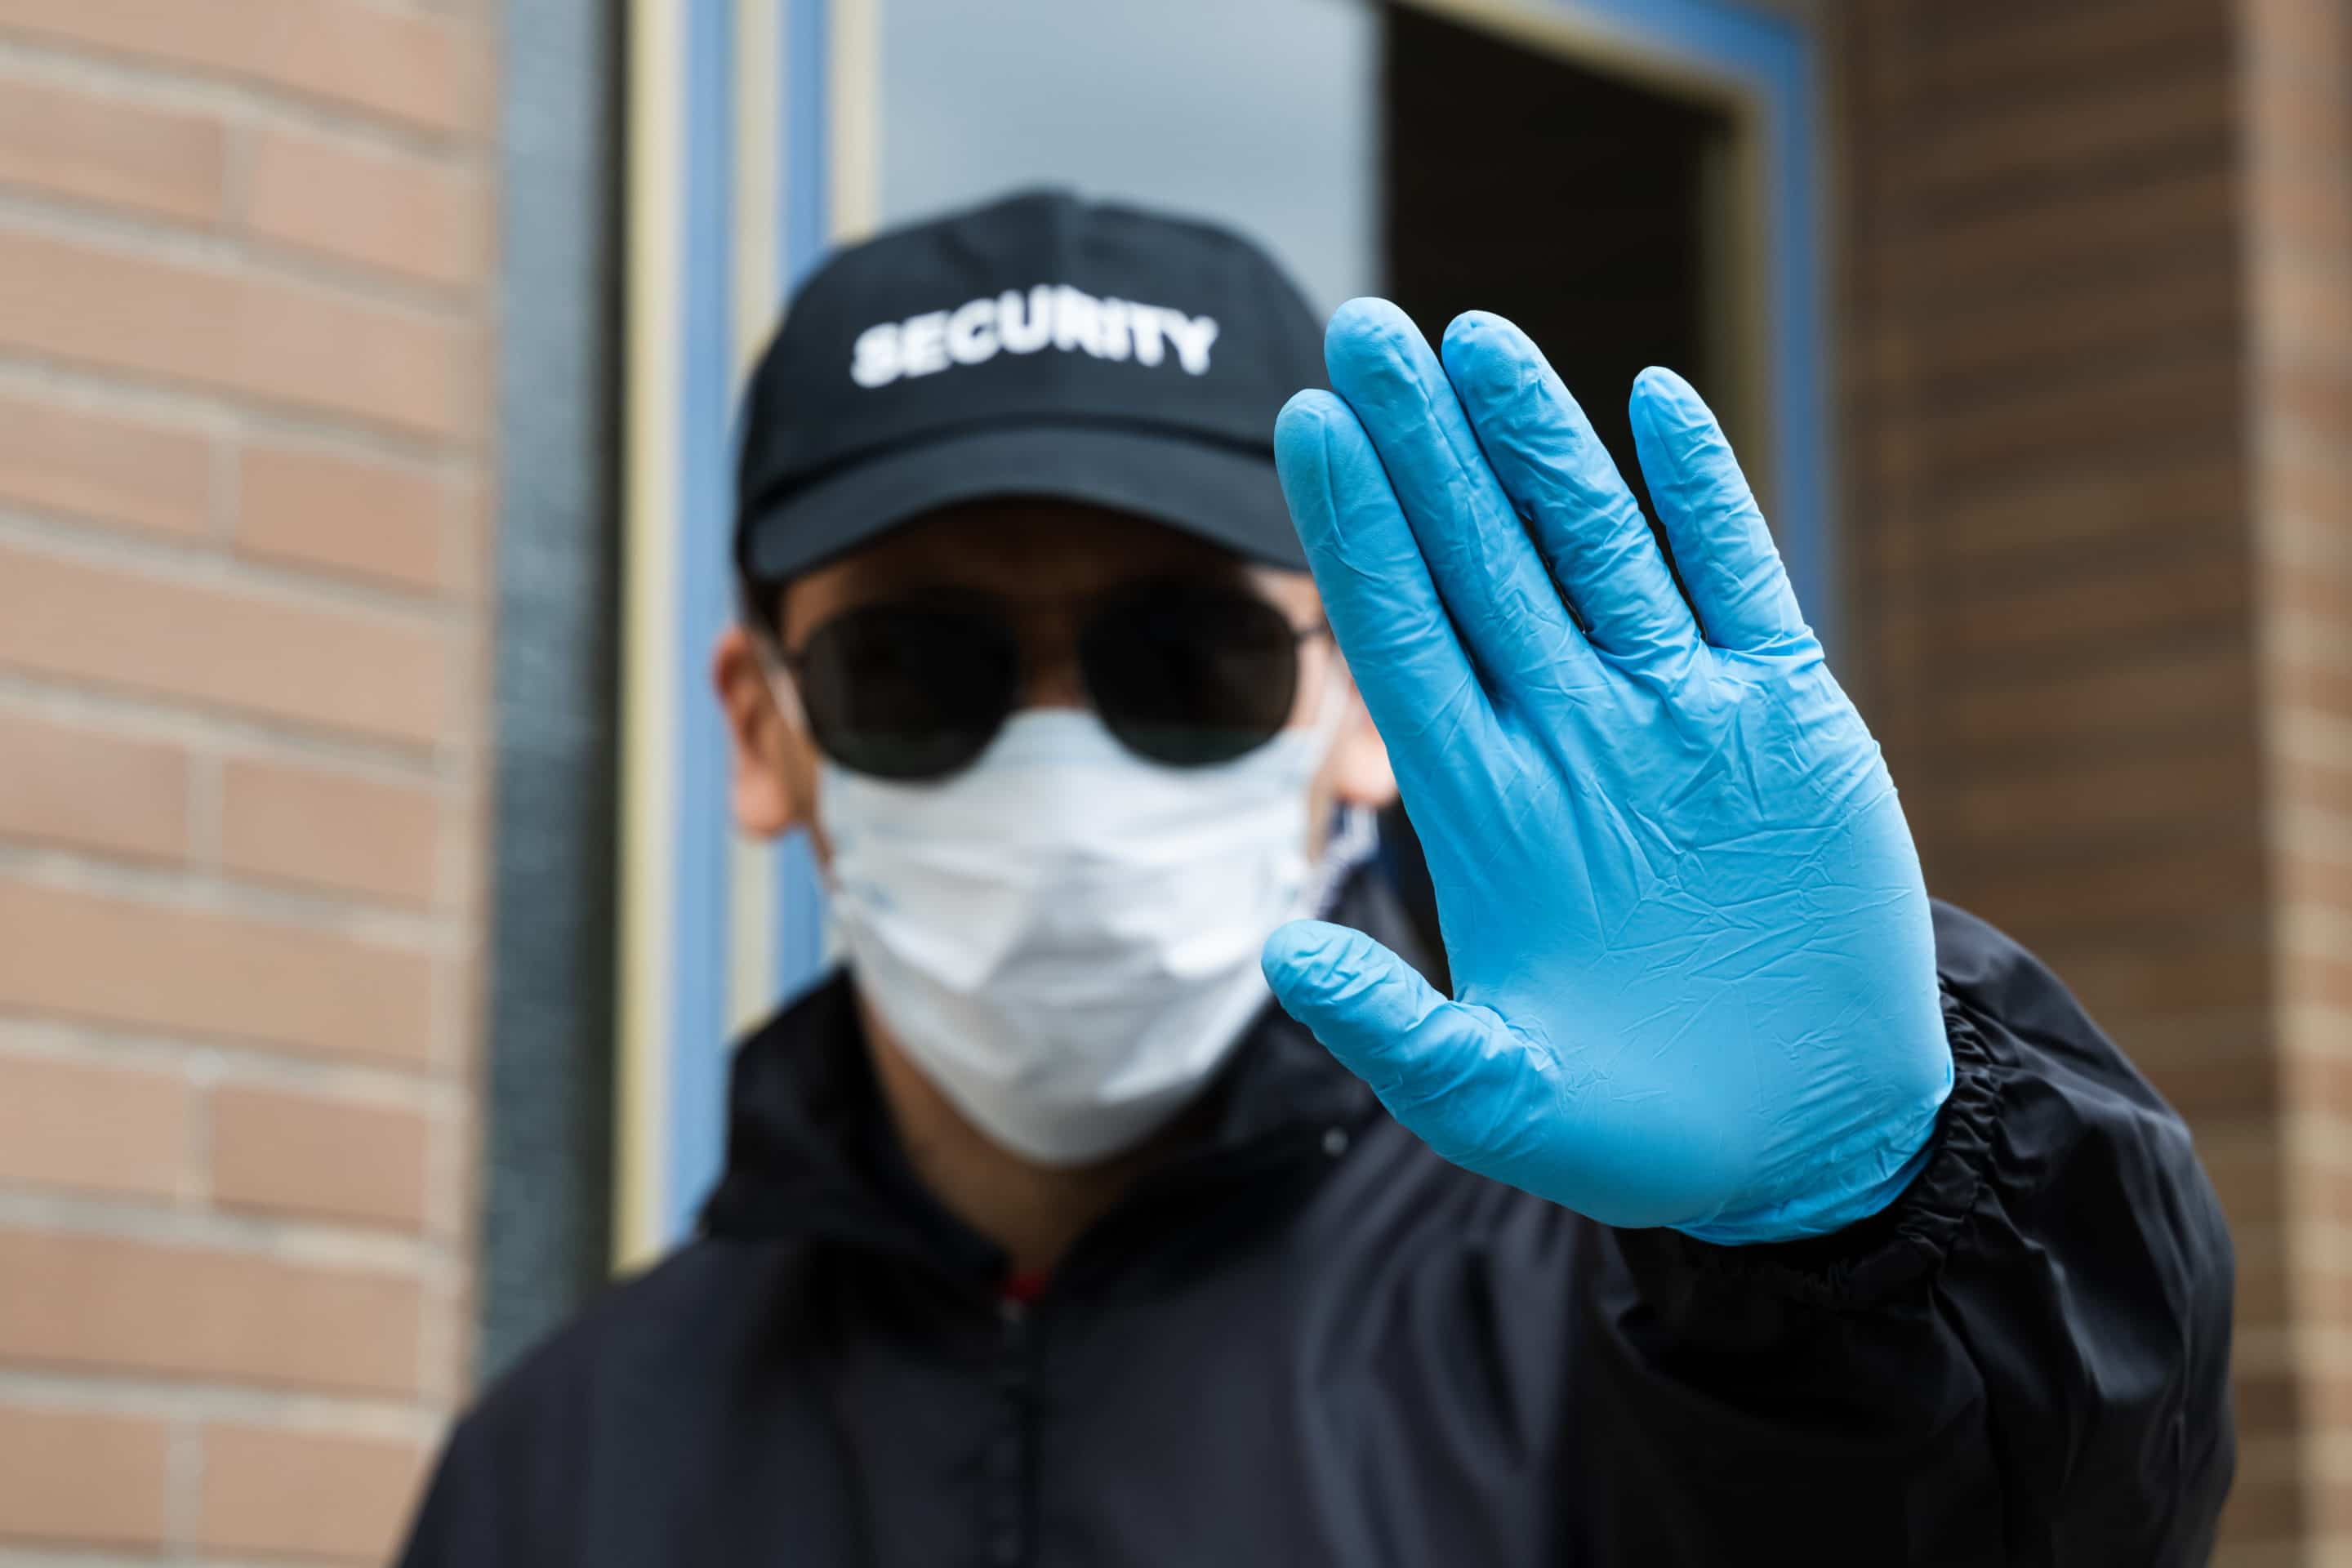 security guard wearing mask